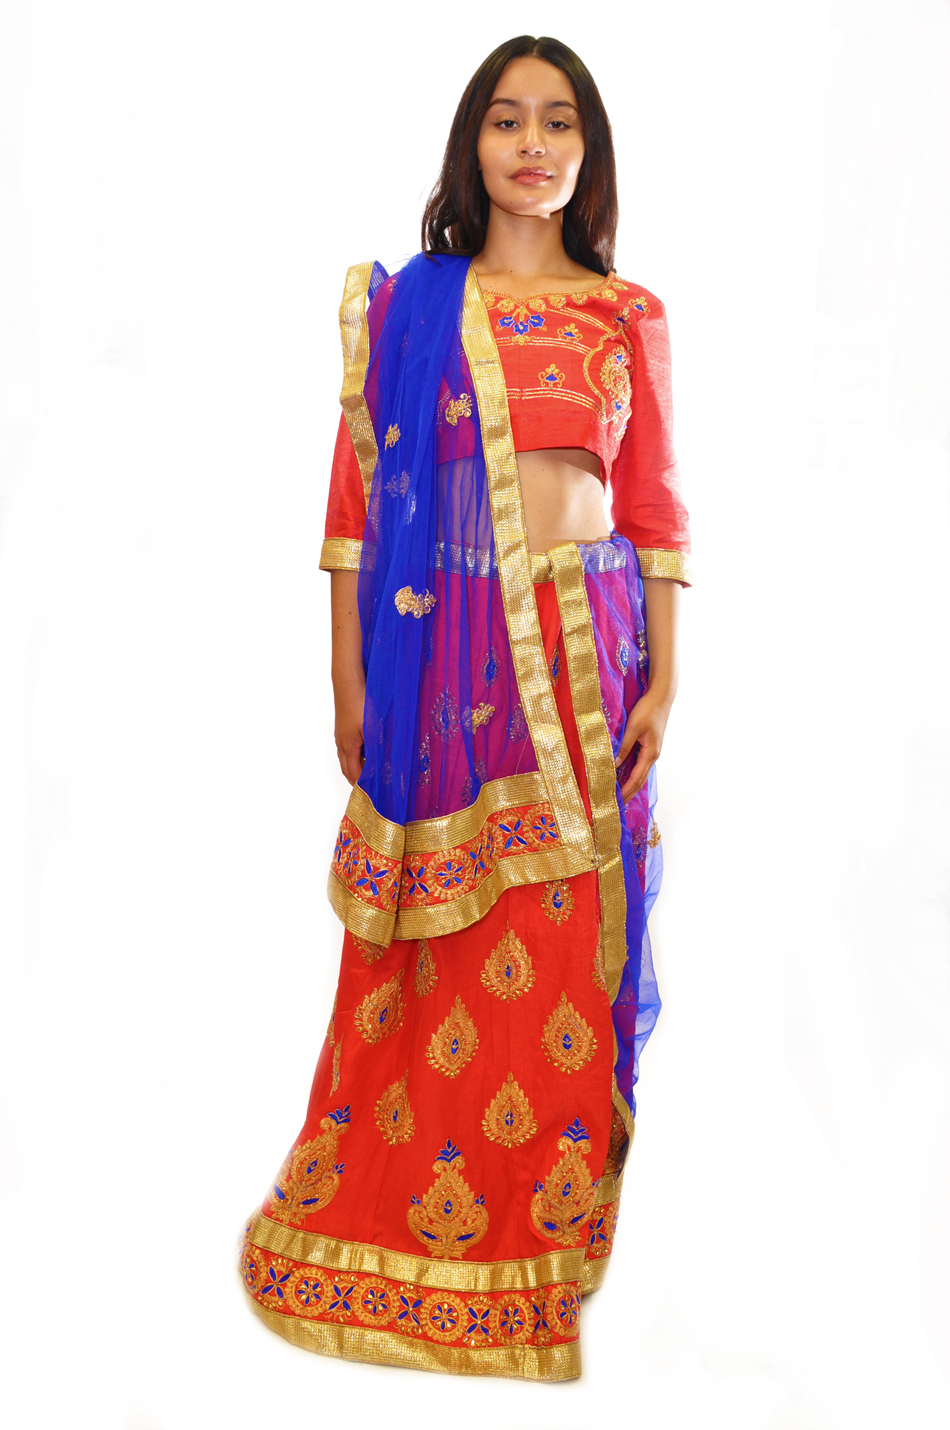 Ruby Orange with Blue and Gold Embroidery Lehenga